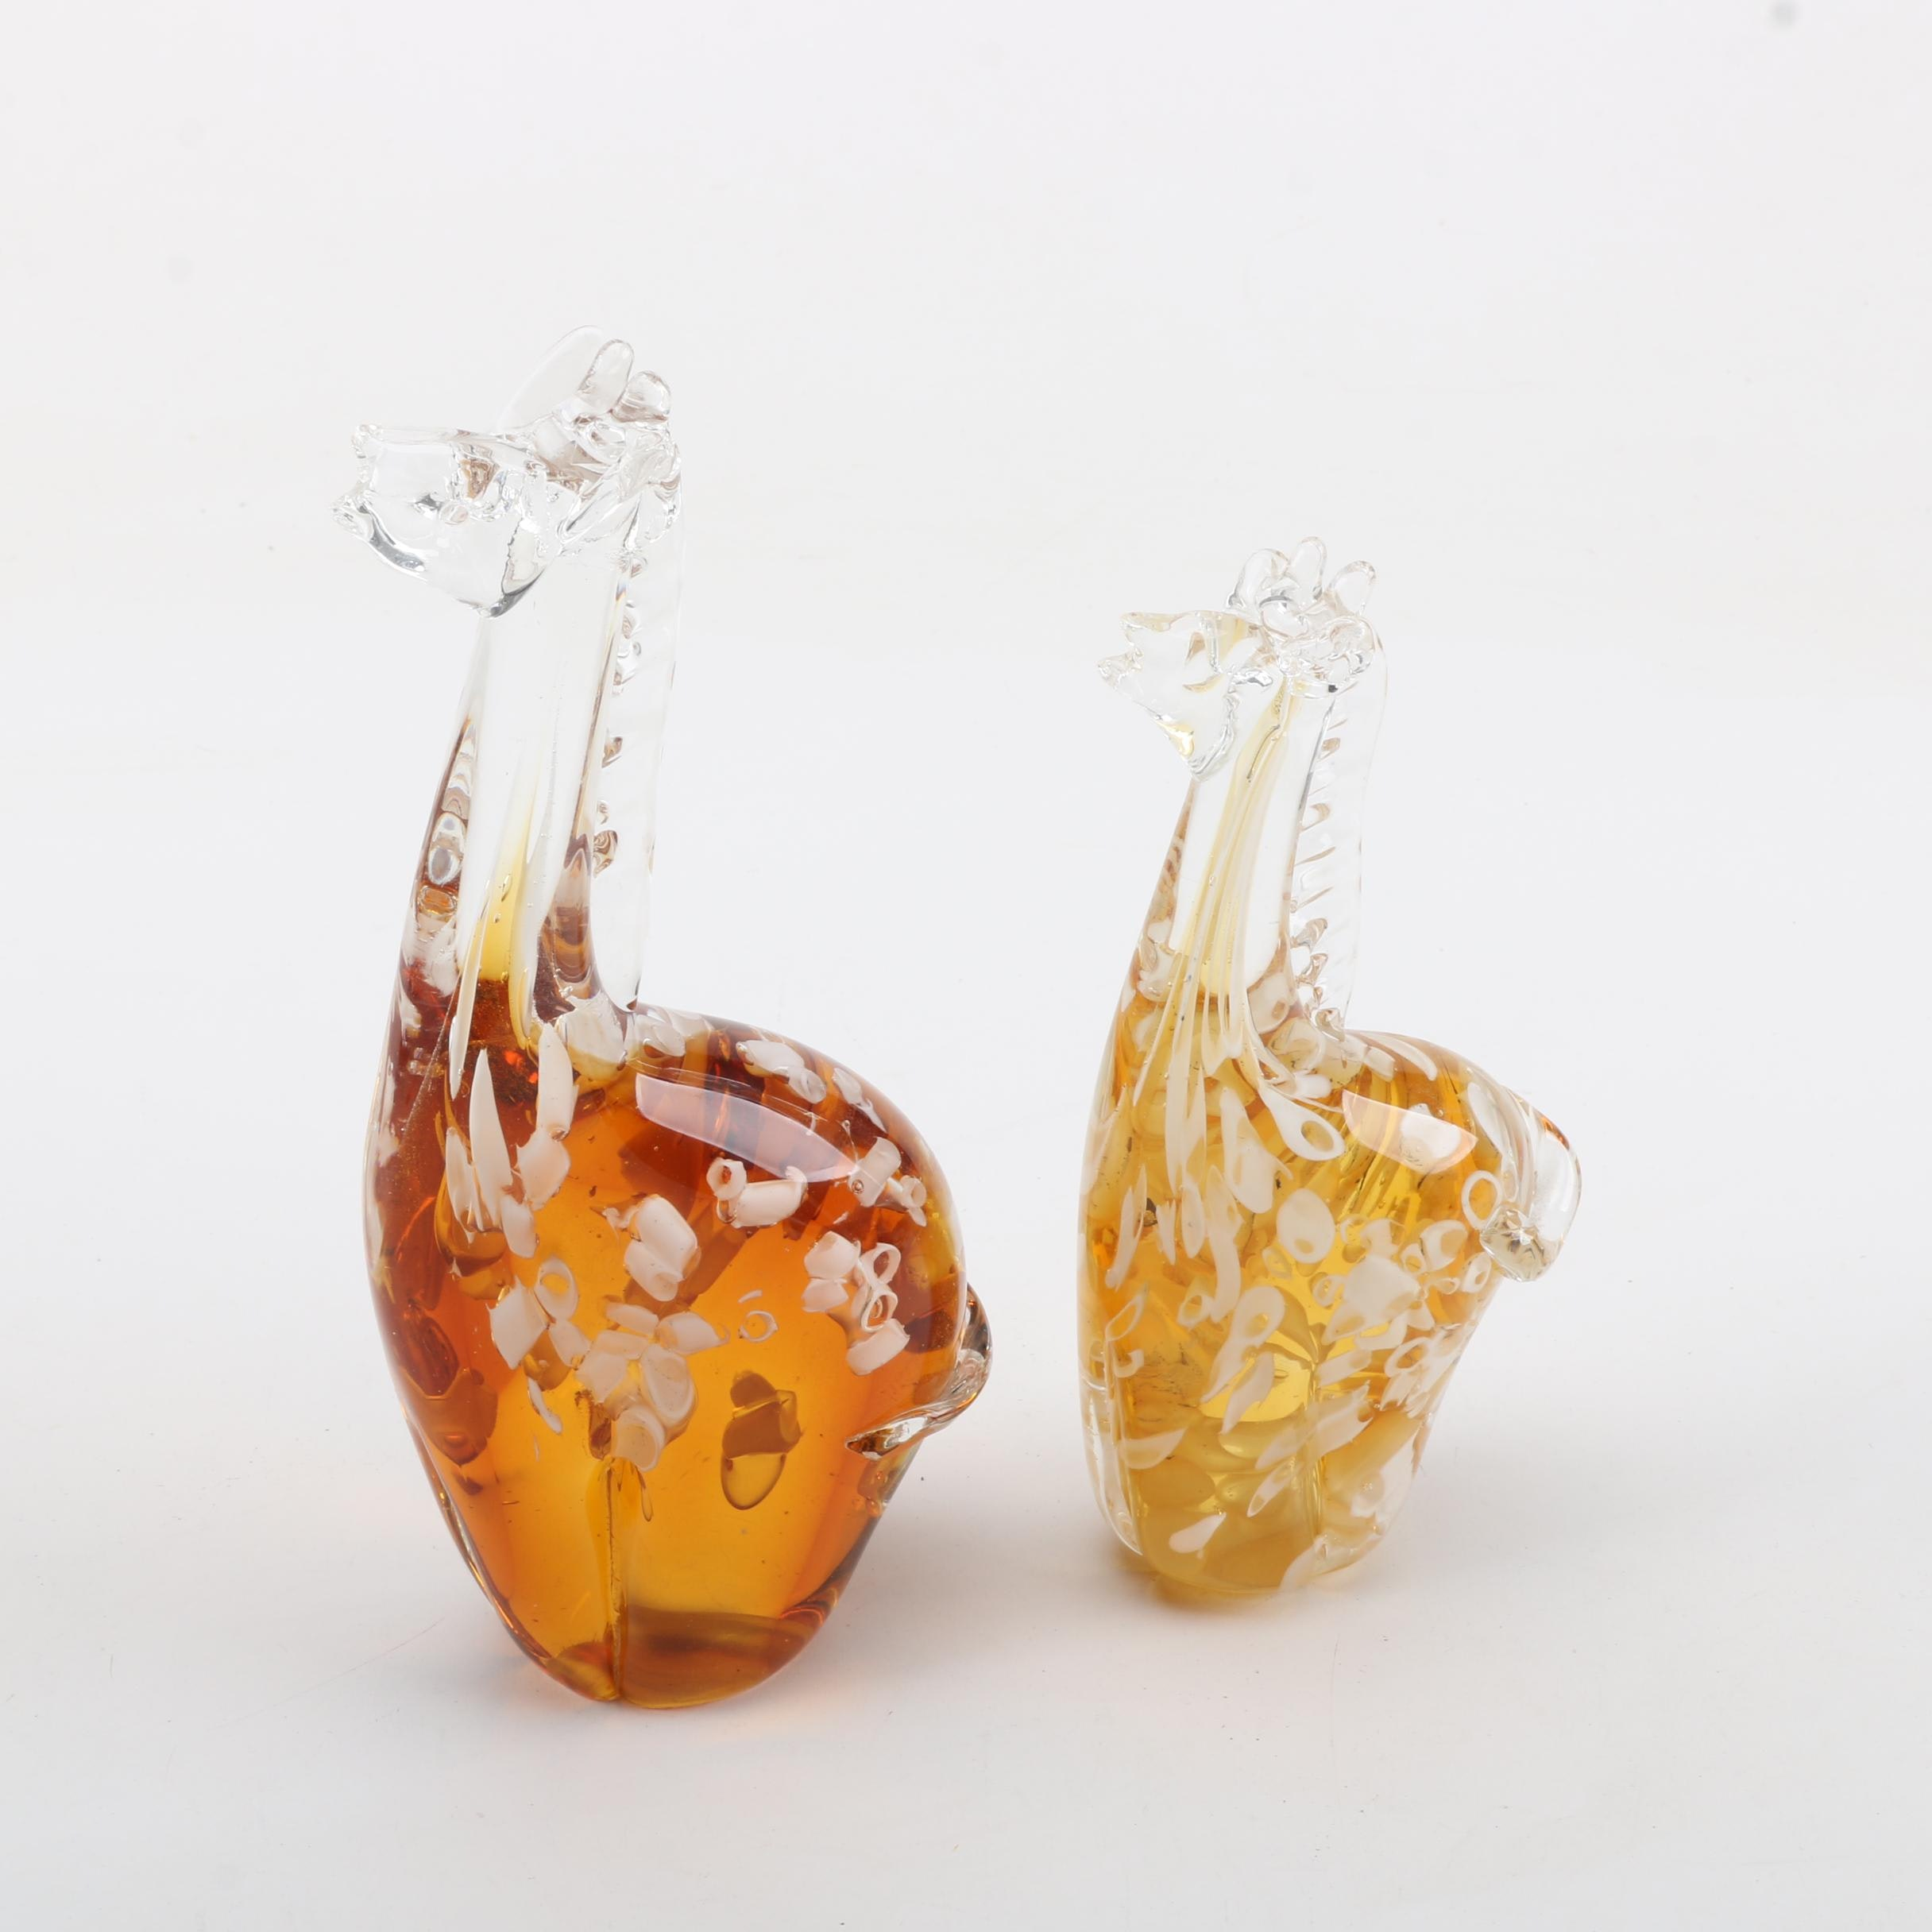 Blown Art Glass Giraffe Figurines